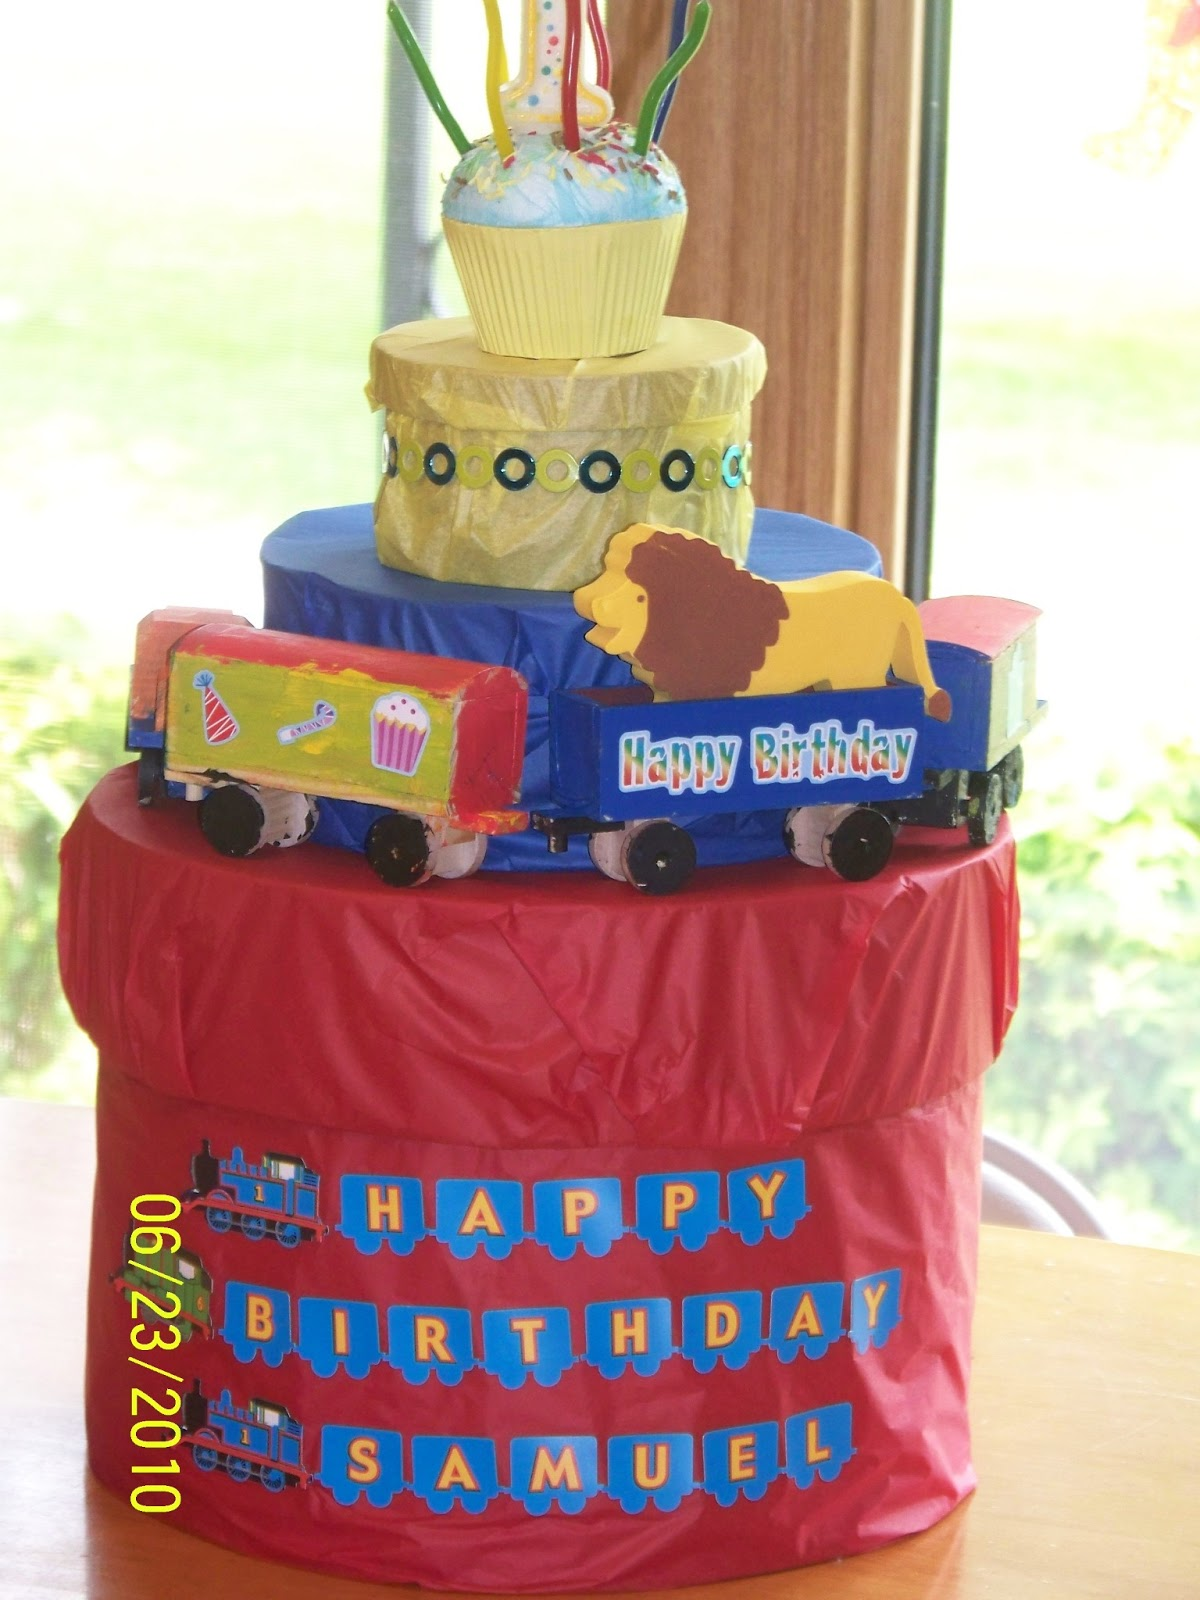 Alternatively You Could Make A Pinata Like Box Cake Made Of Decorated Boxes With Gifts Inside That Your Little One Can Open